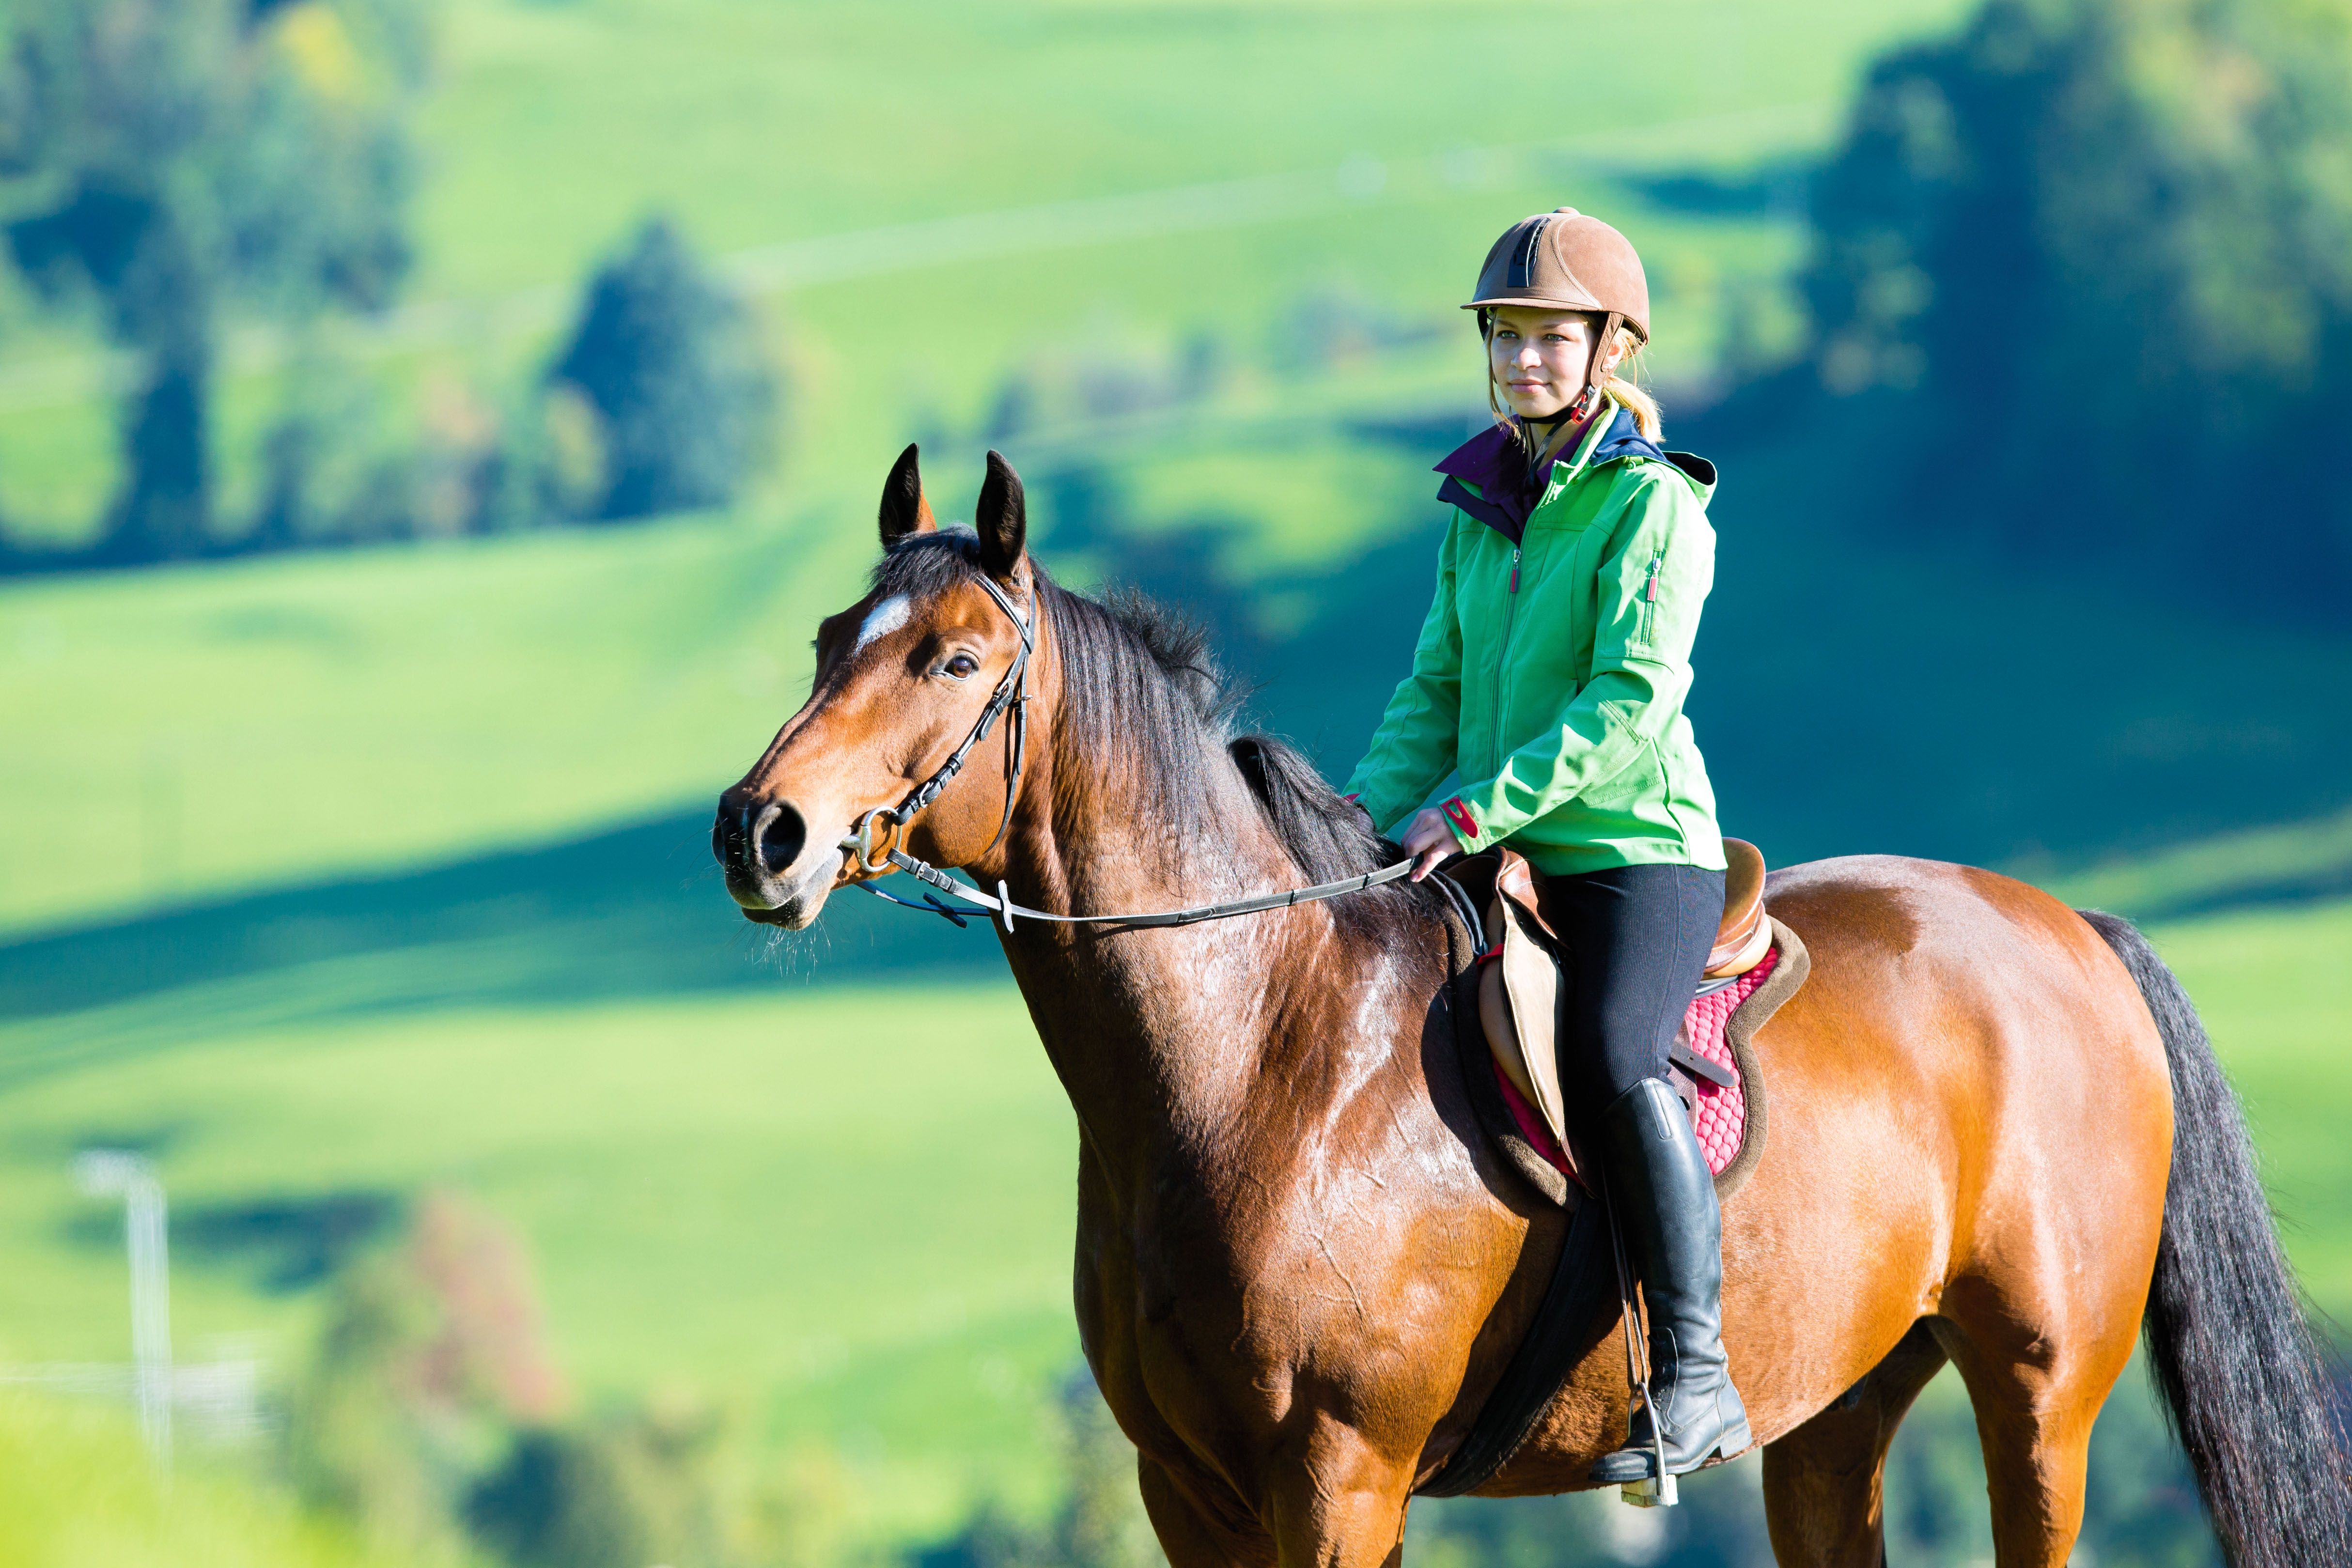 horse riding lessons essay